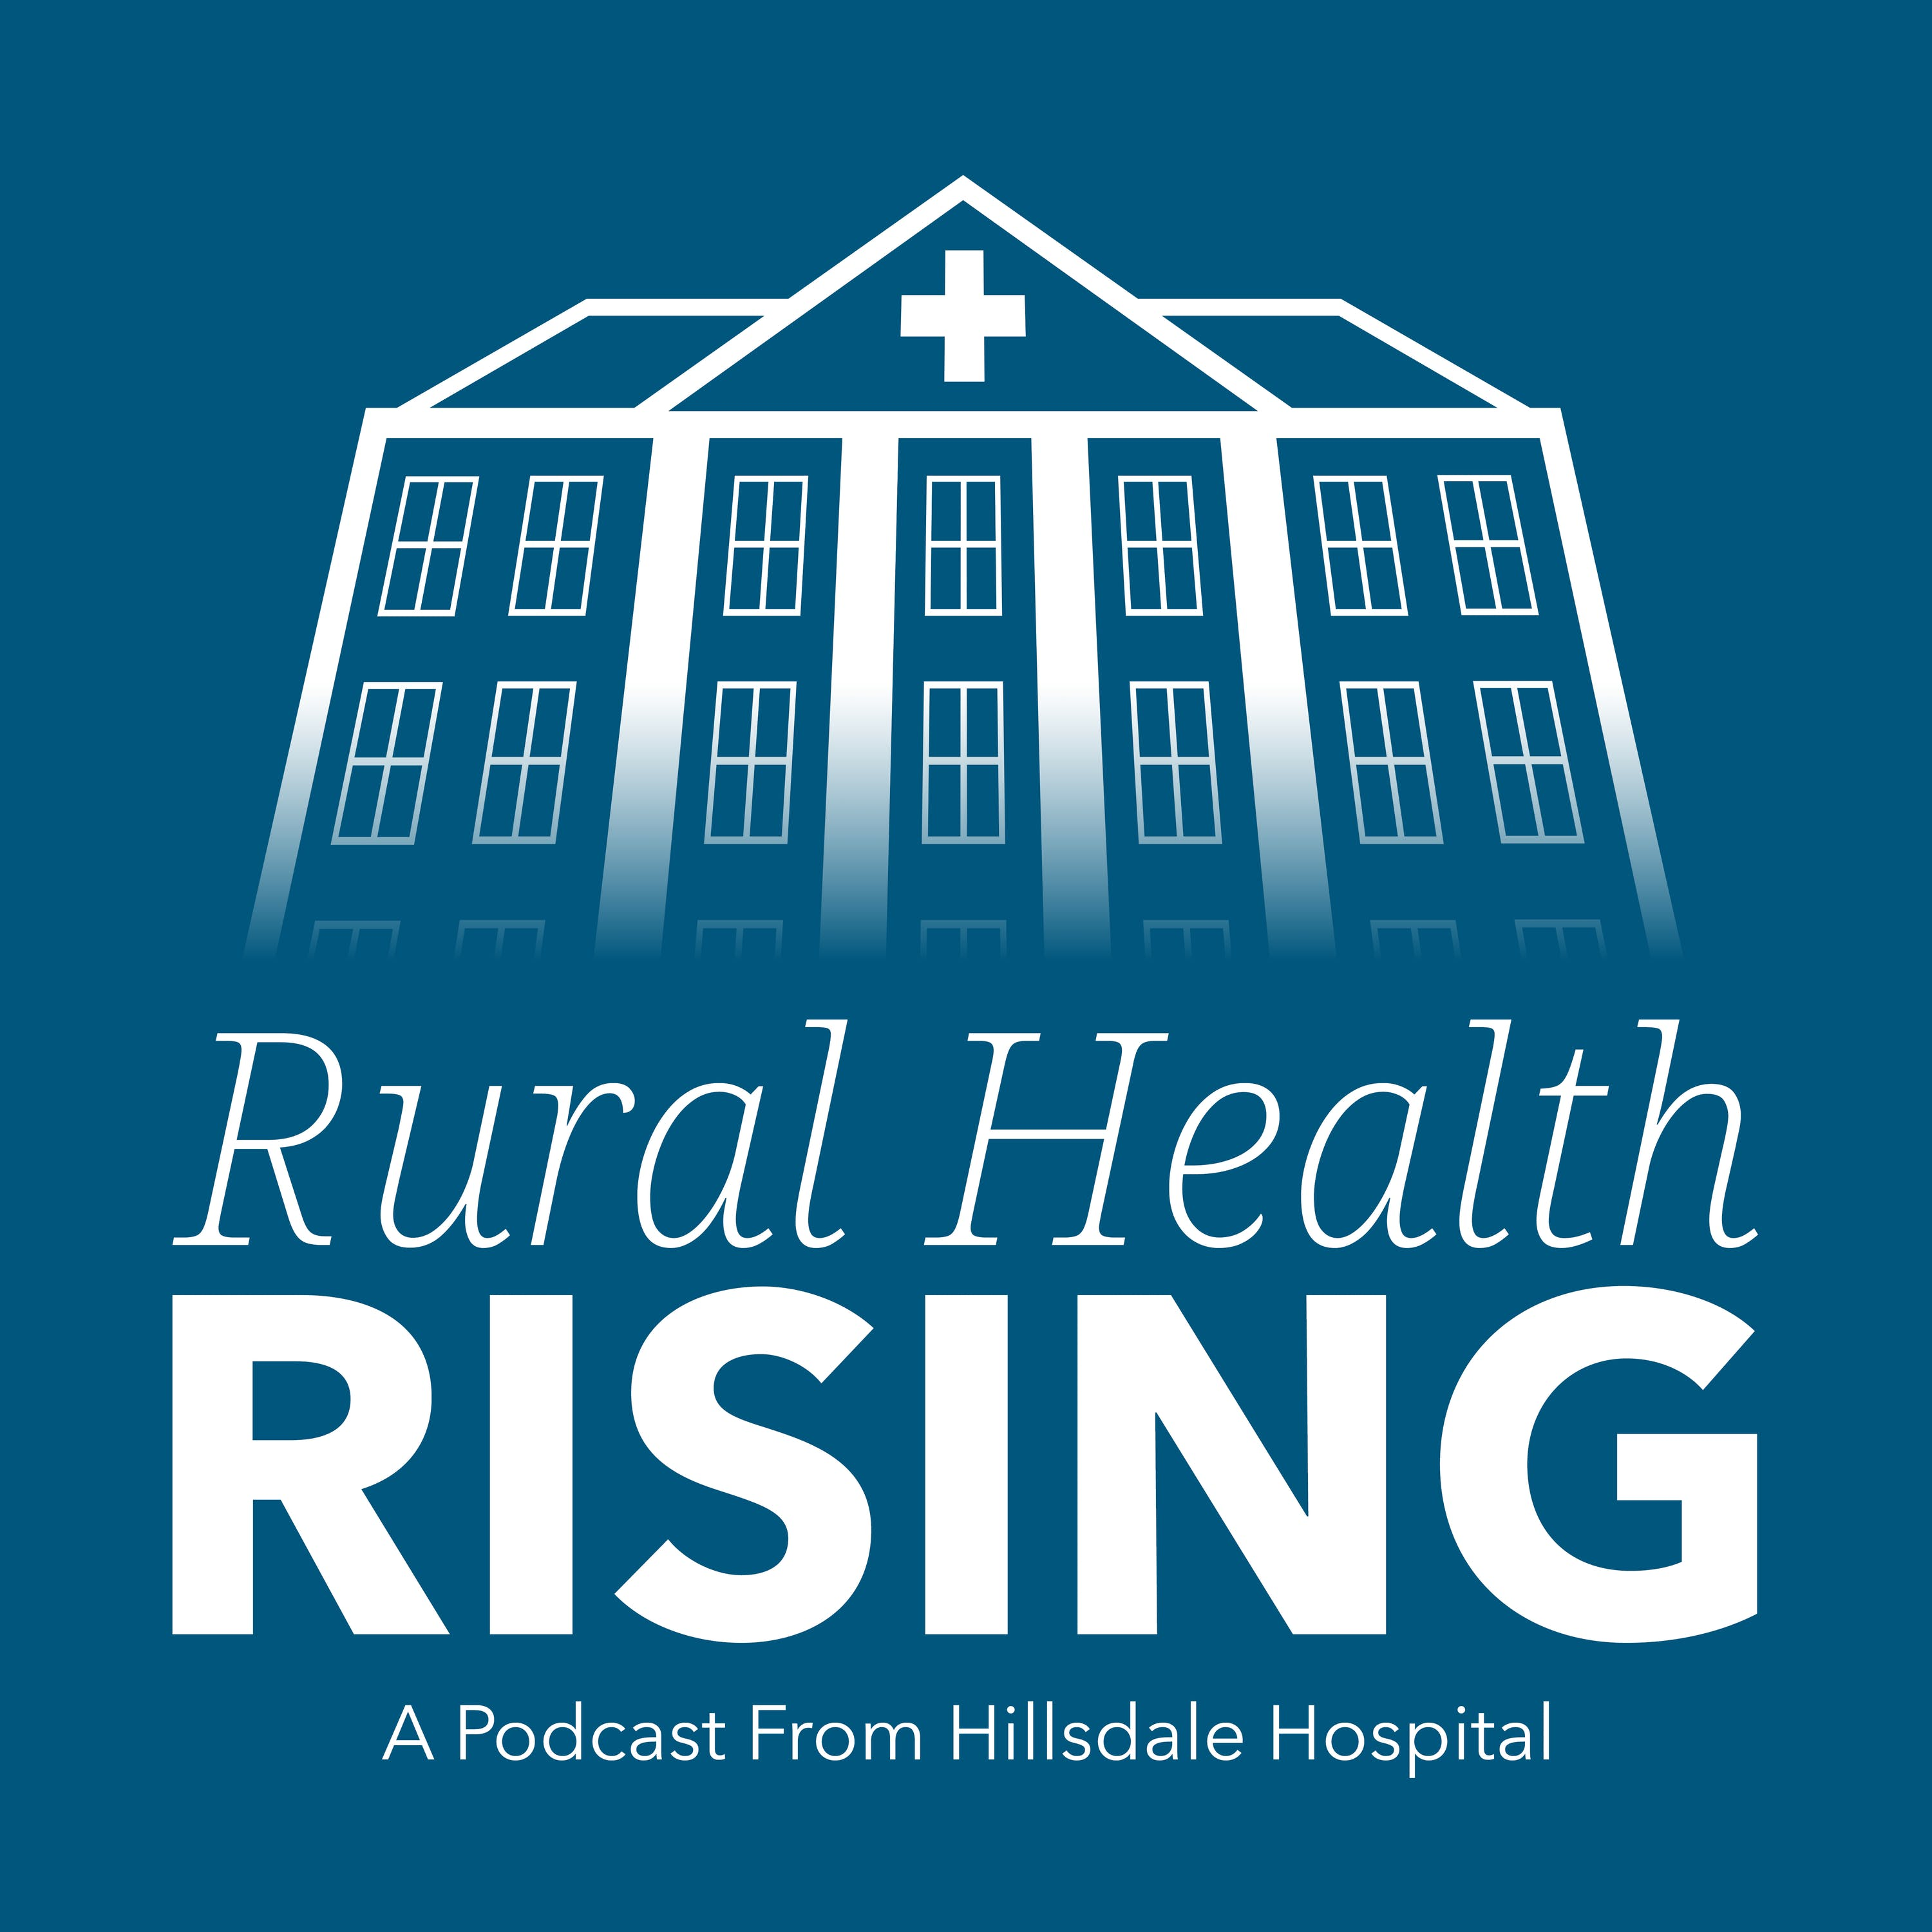 Episode 40: Virtual Hospital During COVID-19